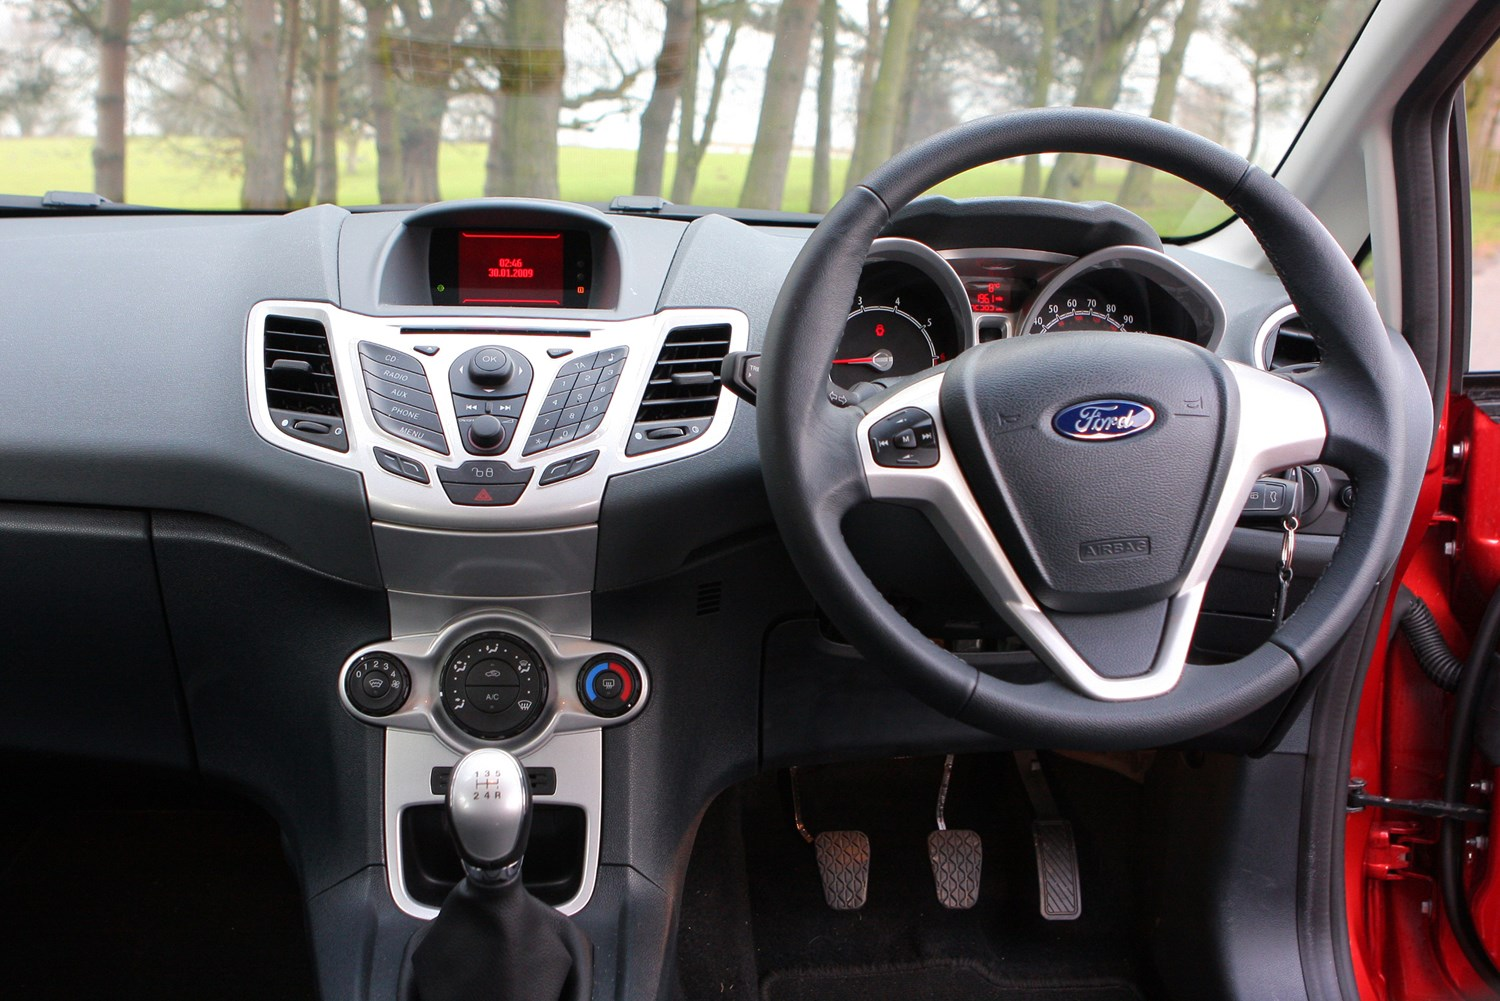 Ford Fiesta Hatchback 2008 Driving Performance Parkers